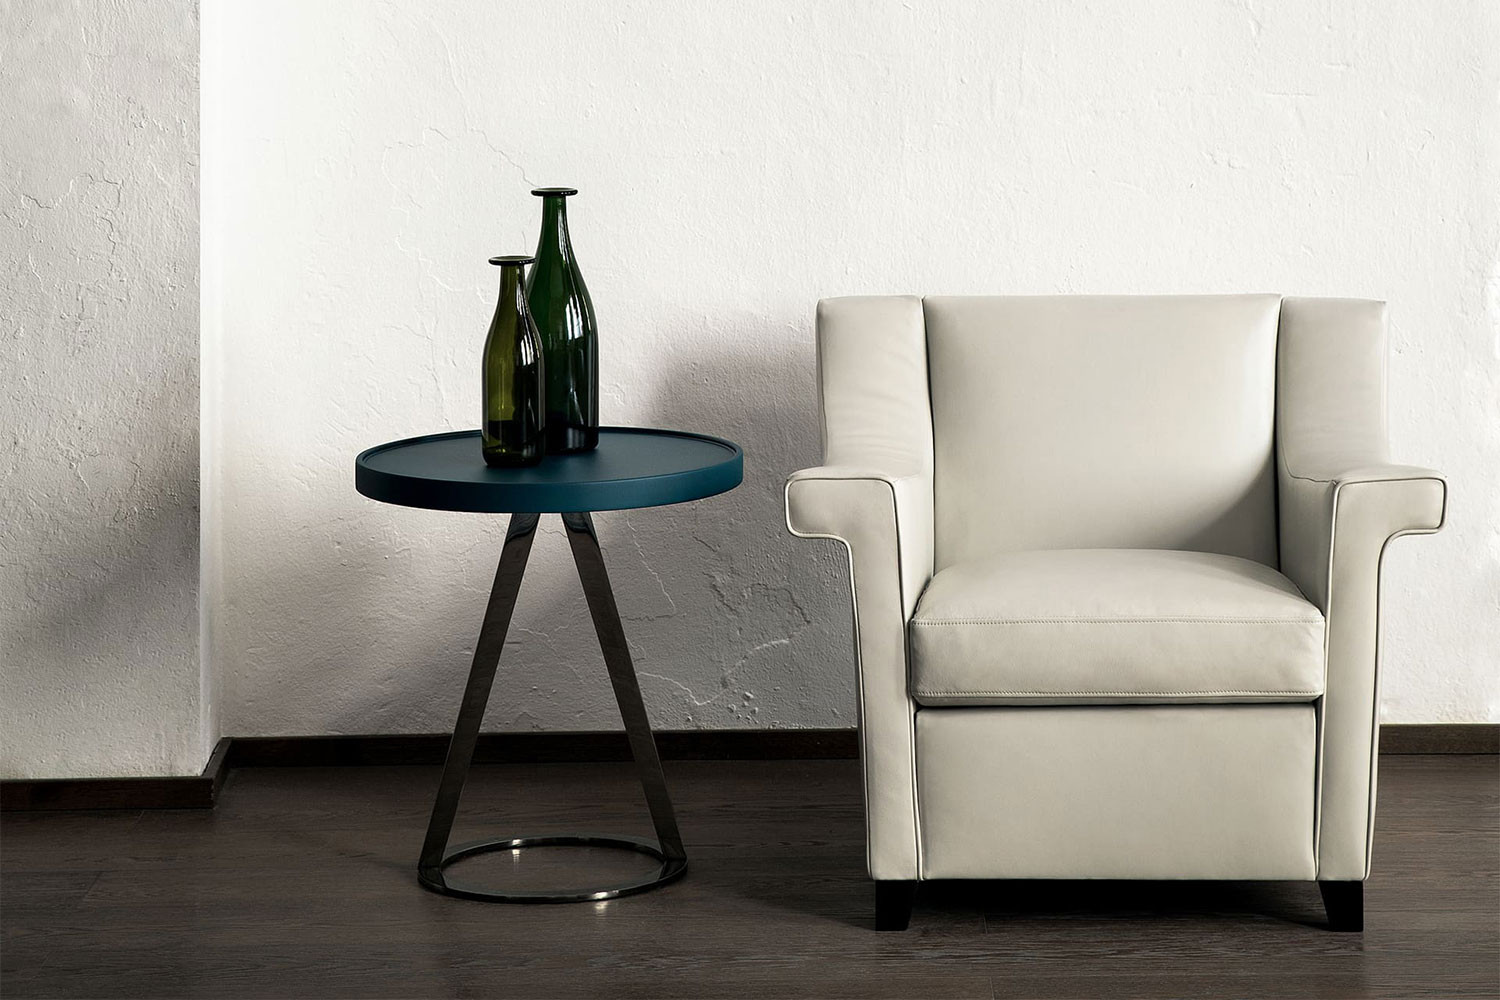 Modern slope-arm club chair with a low back, hardwood square tapered legs and distinctive winged arms